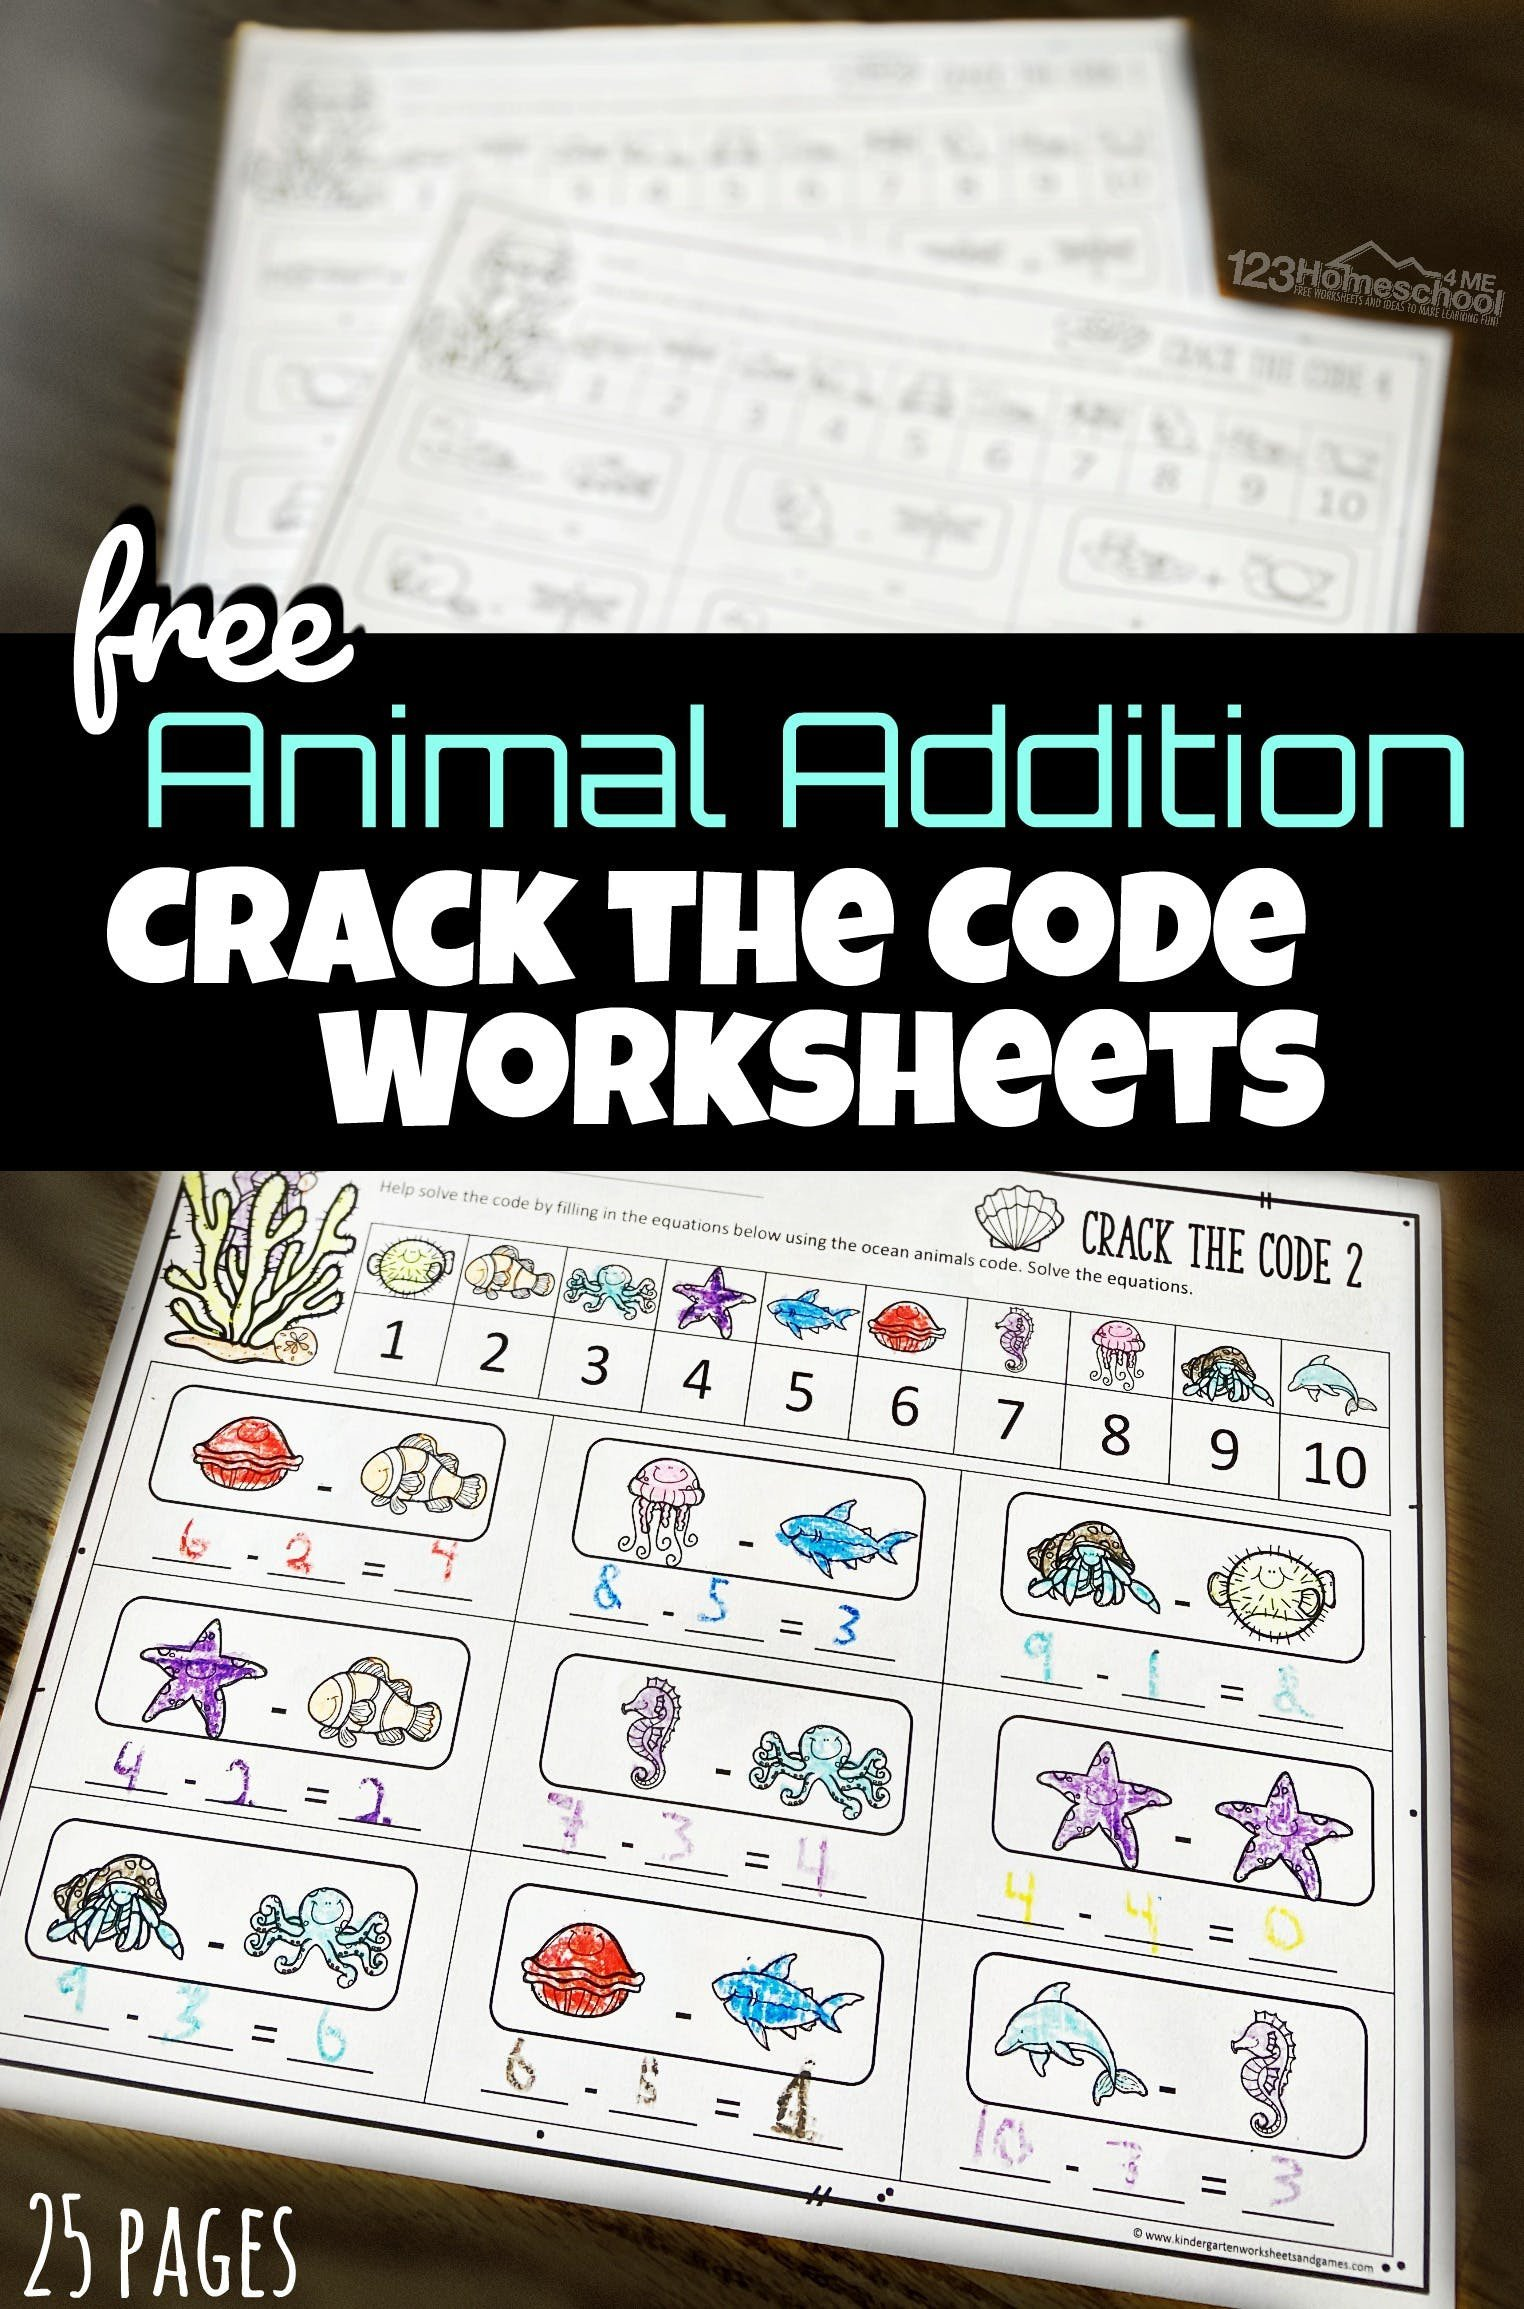 Cracking the Code Math Worksheets Math Crack the Code Worksheets